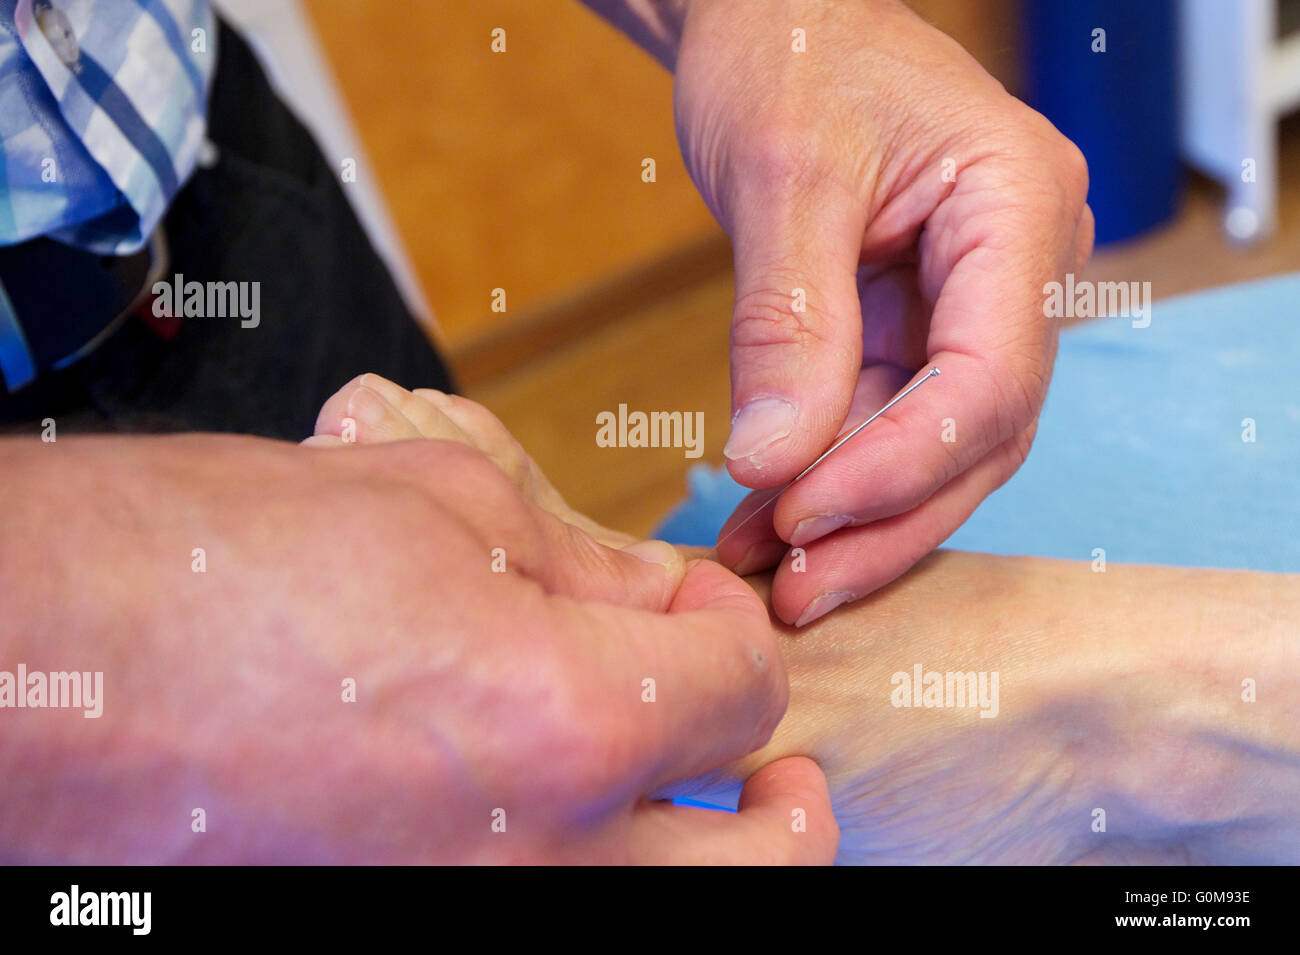 Alternative medicine. Acupuncture. - Stock Image